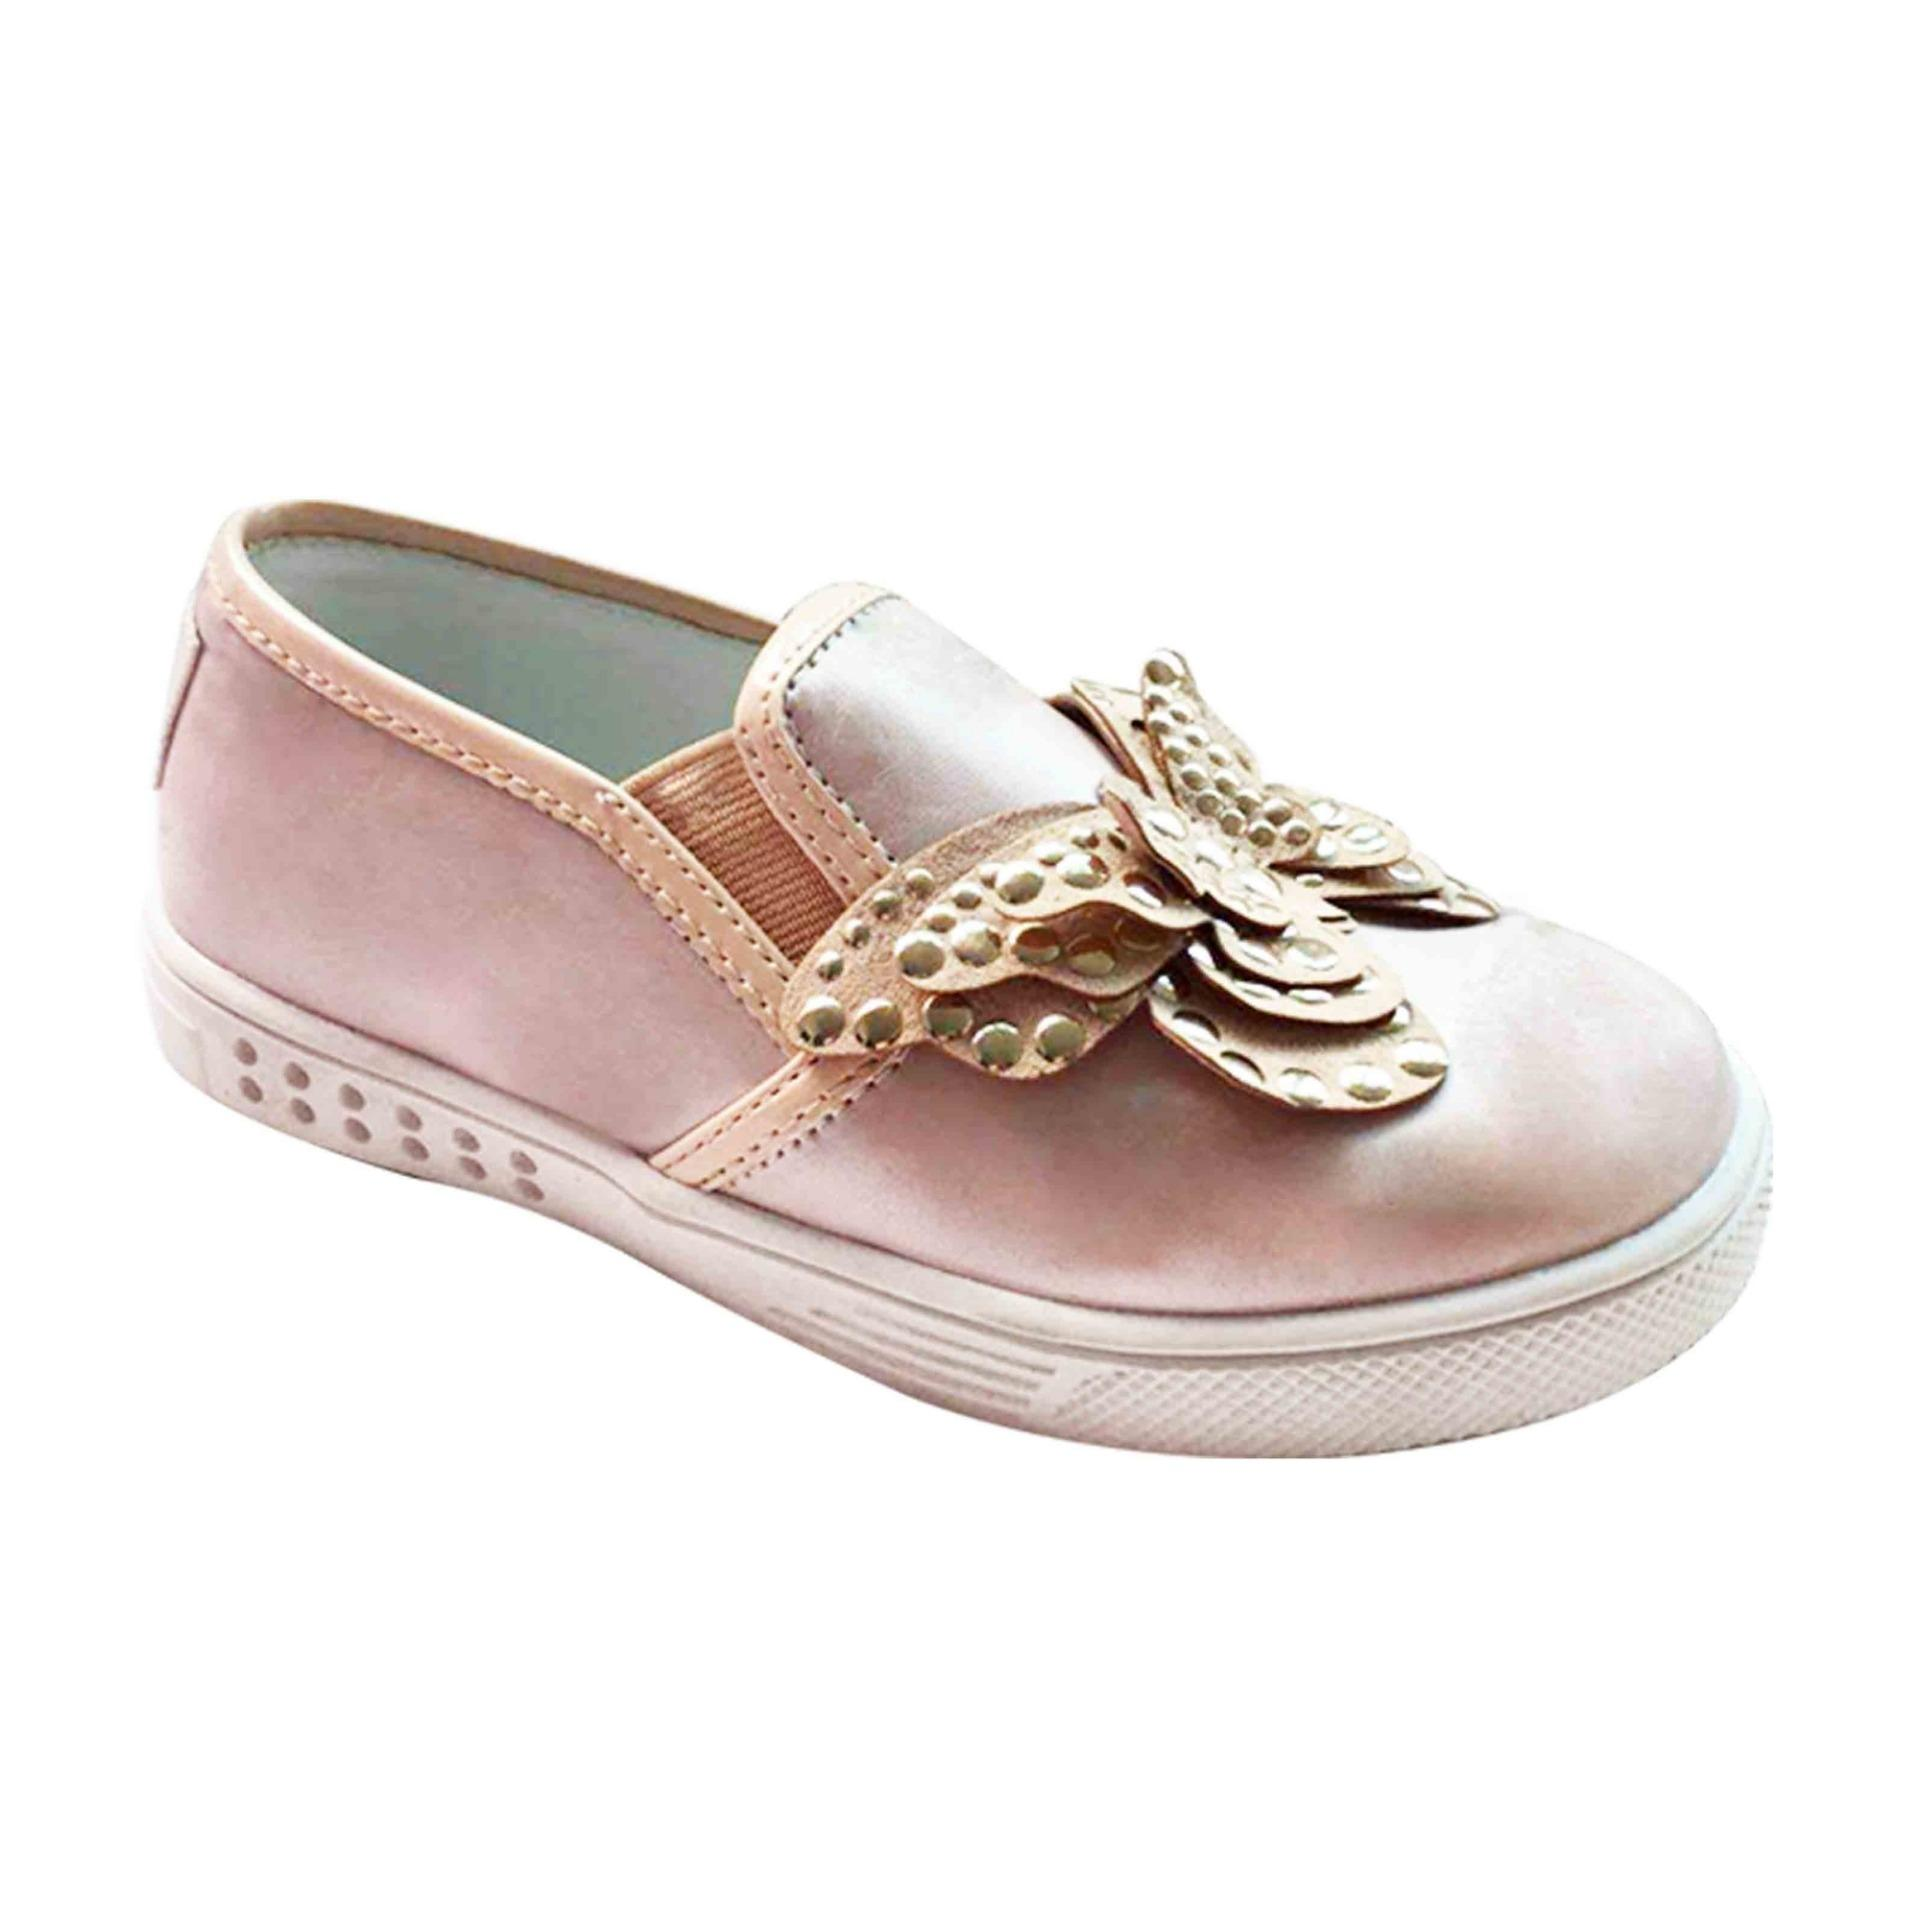 Barbie Children Girls Casual Shoes Lindze Pink